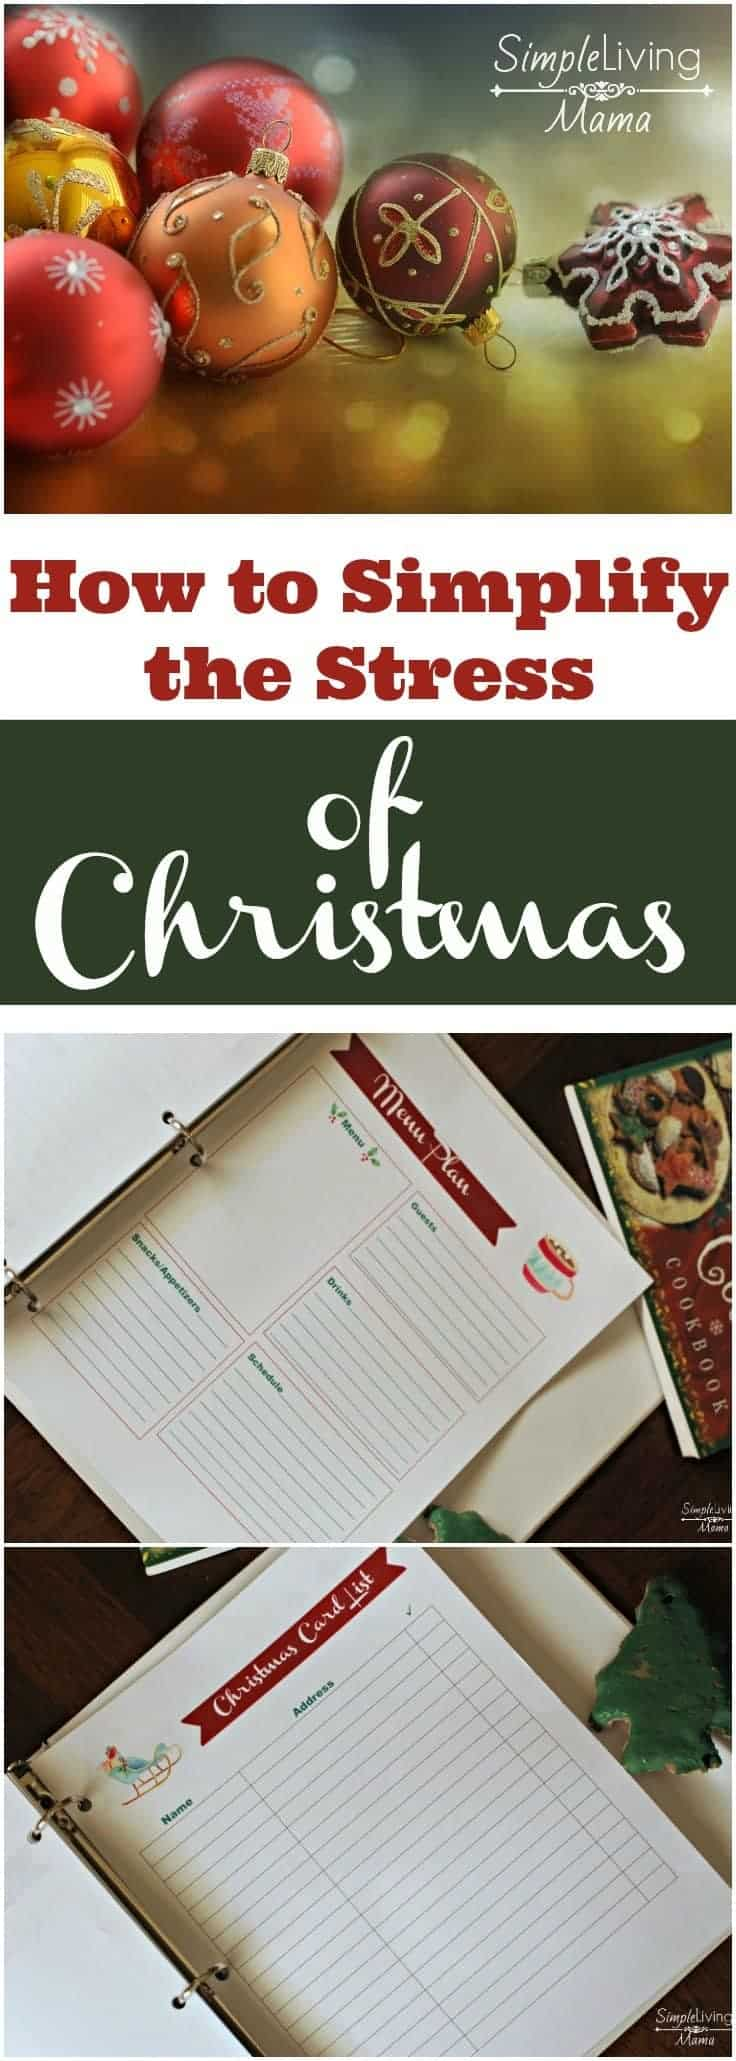 Don't let Christmas stress you out this year! Plan ahead and simplify the stress.